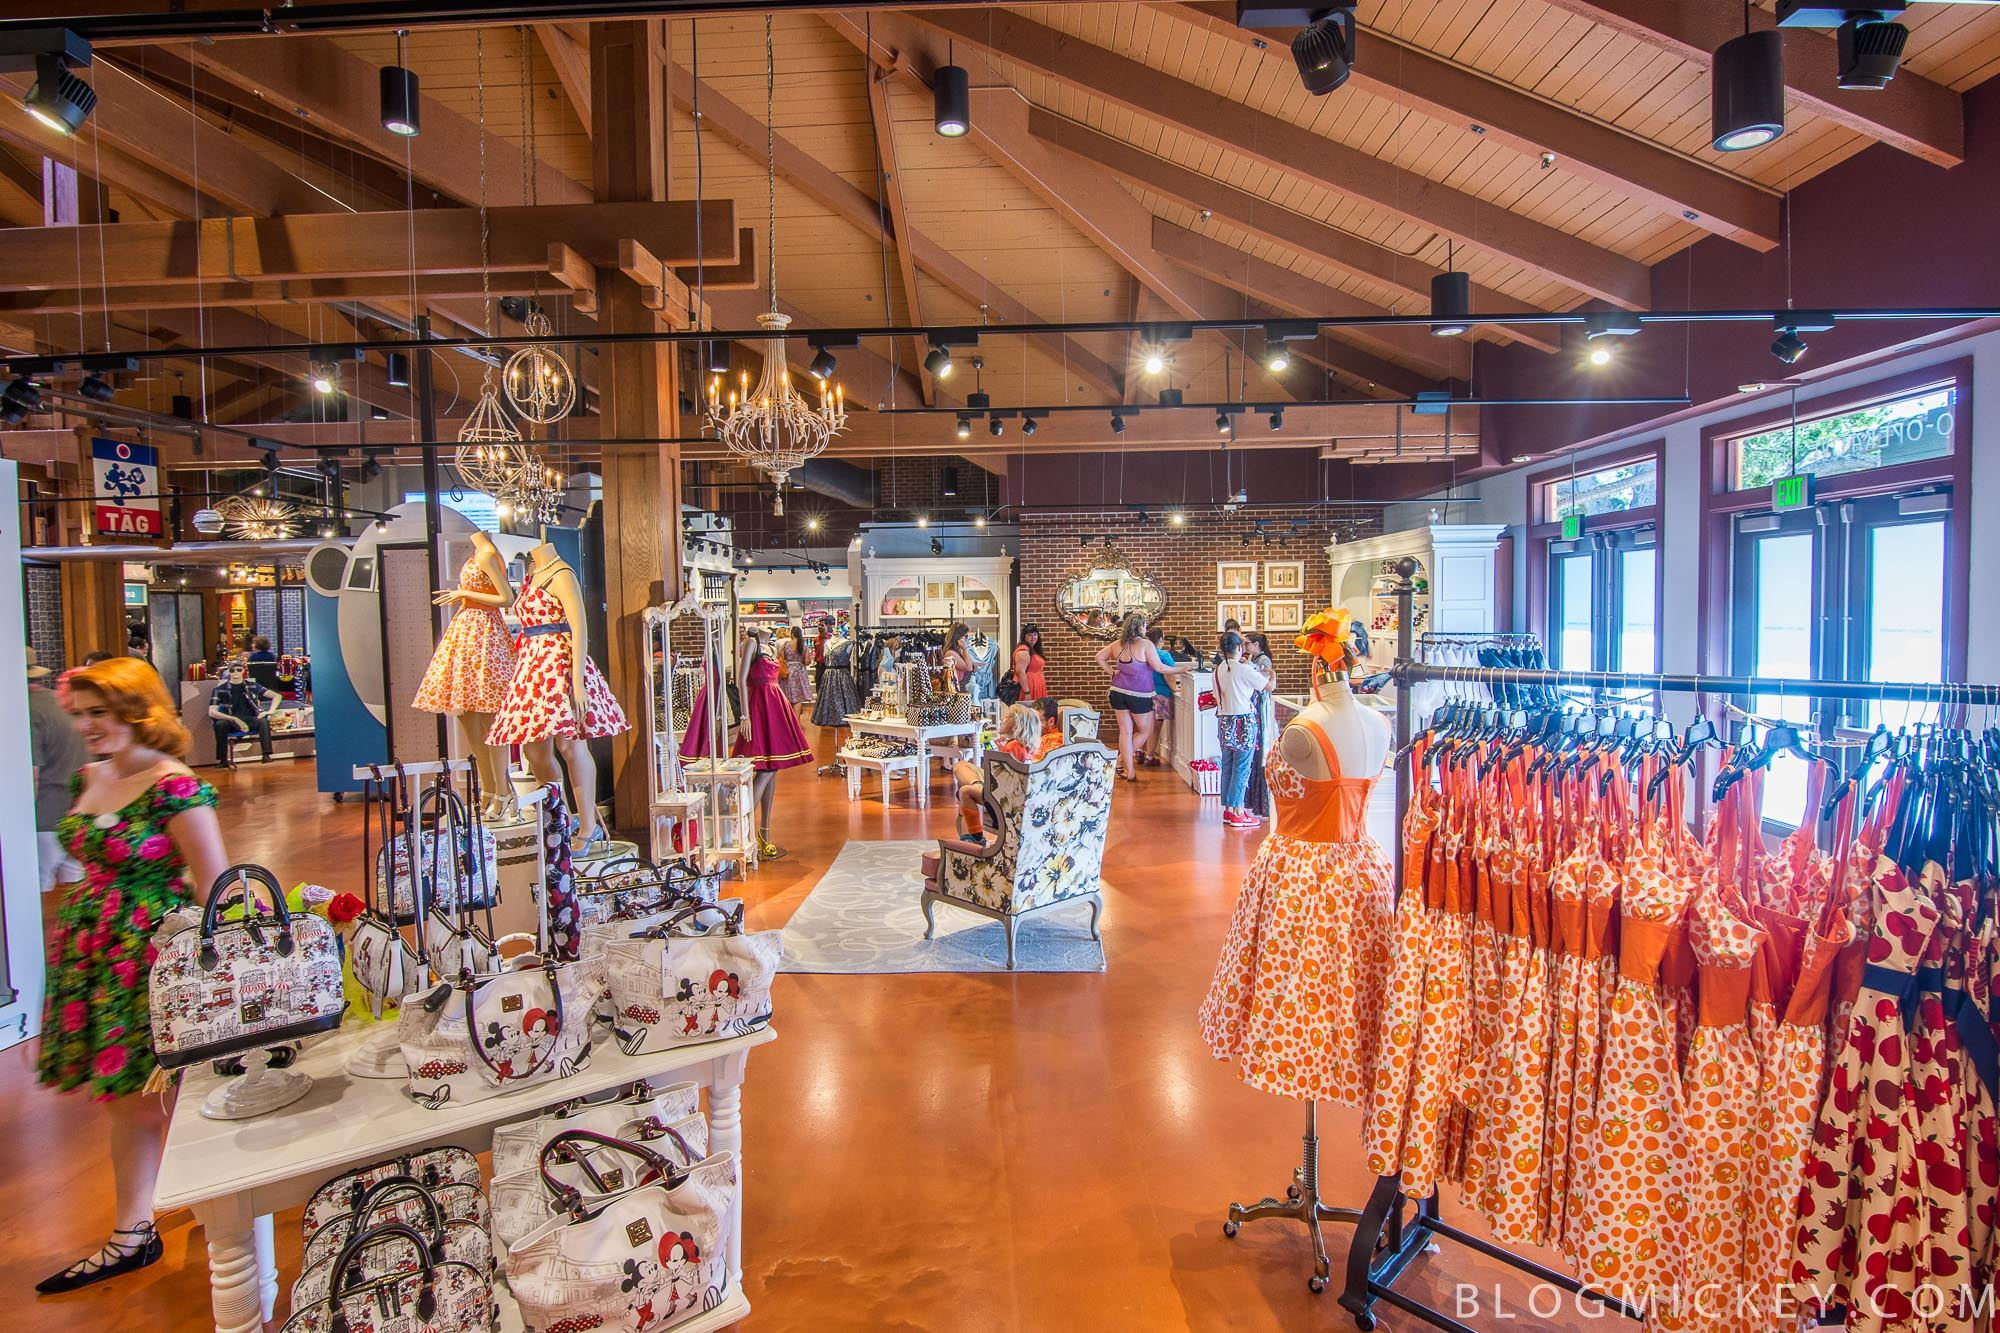 34ccb528b9992 PHOTOS - The Dress Shop opens in the Marketplace Co-Op at Disney ...